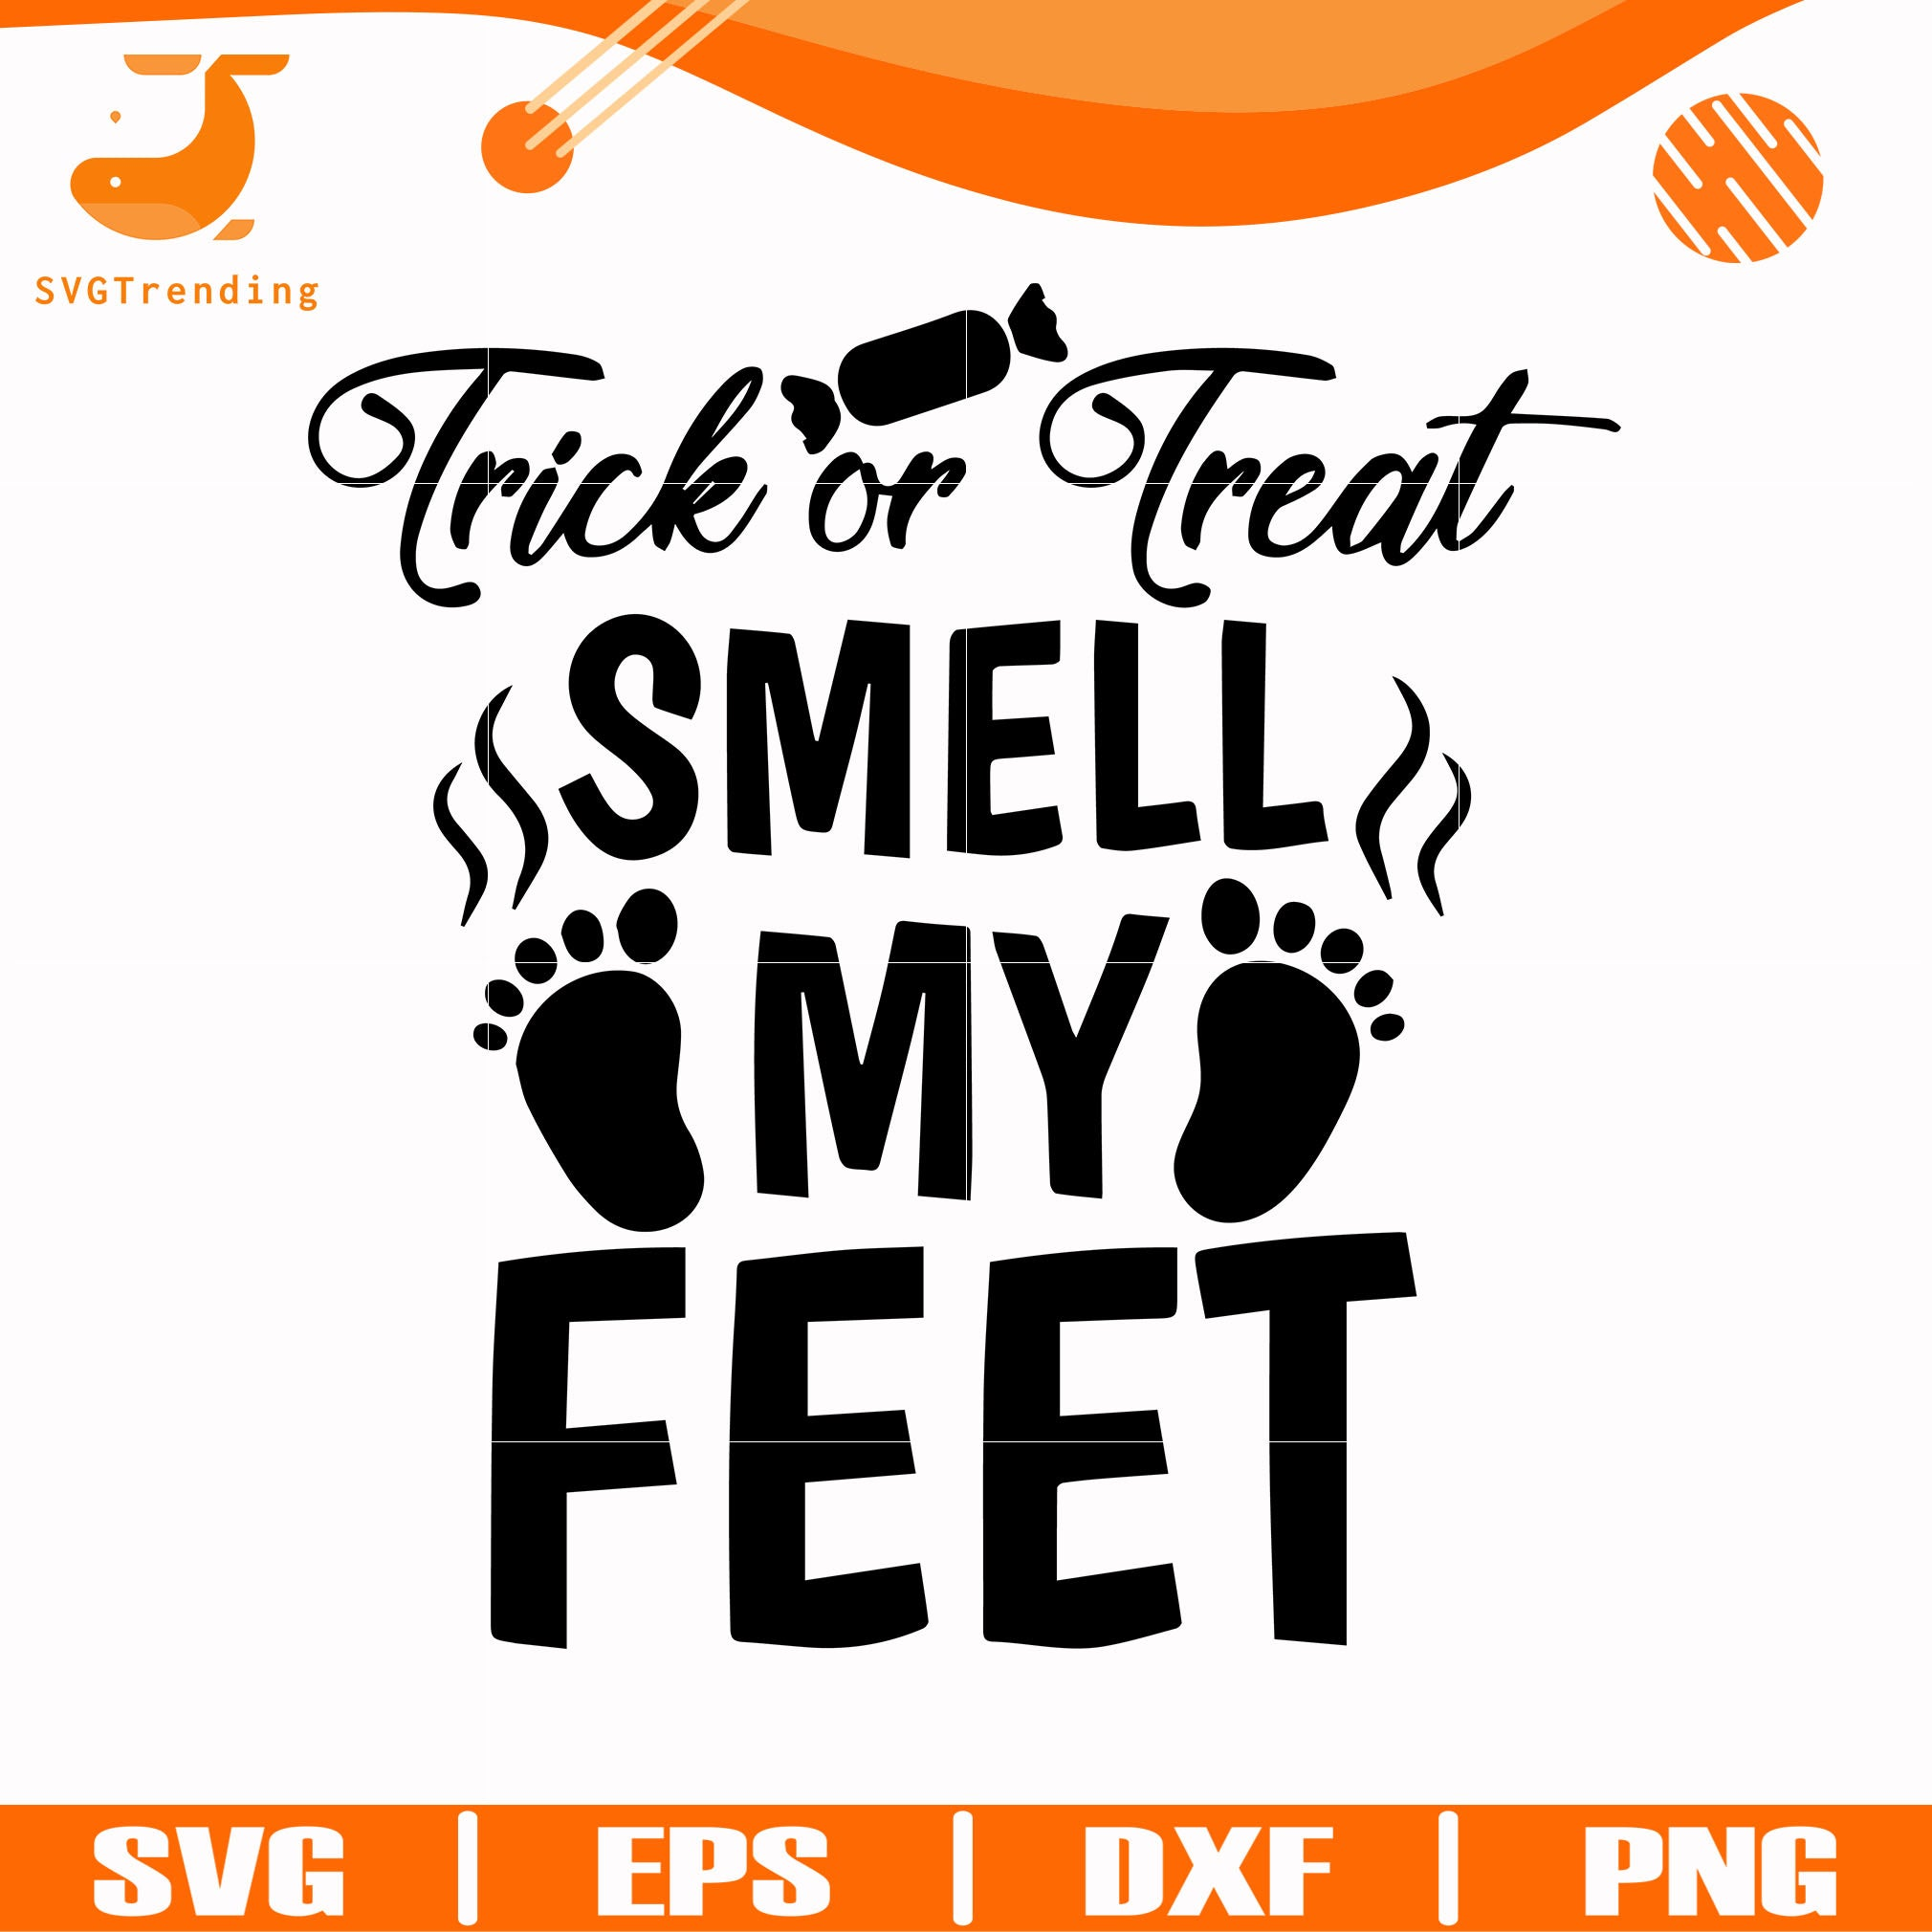 Trick Or Treat Smell My My Feet Svg Halloween Svg Png Dxf Eps Digit Svgtrending